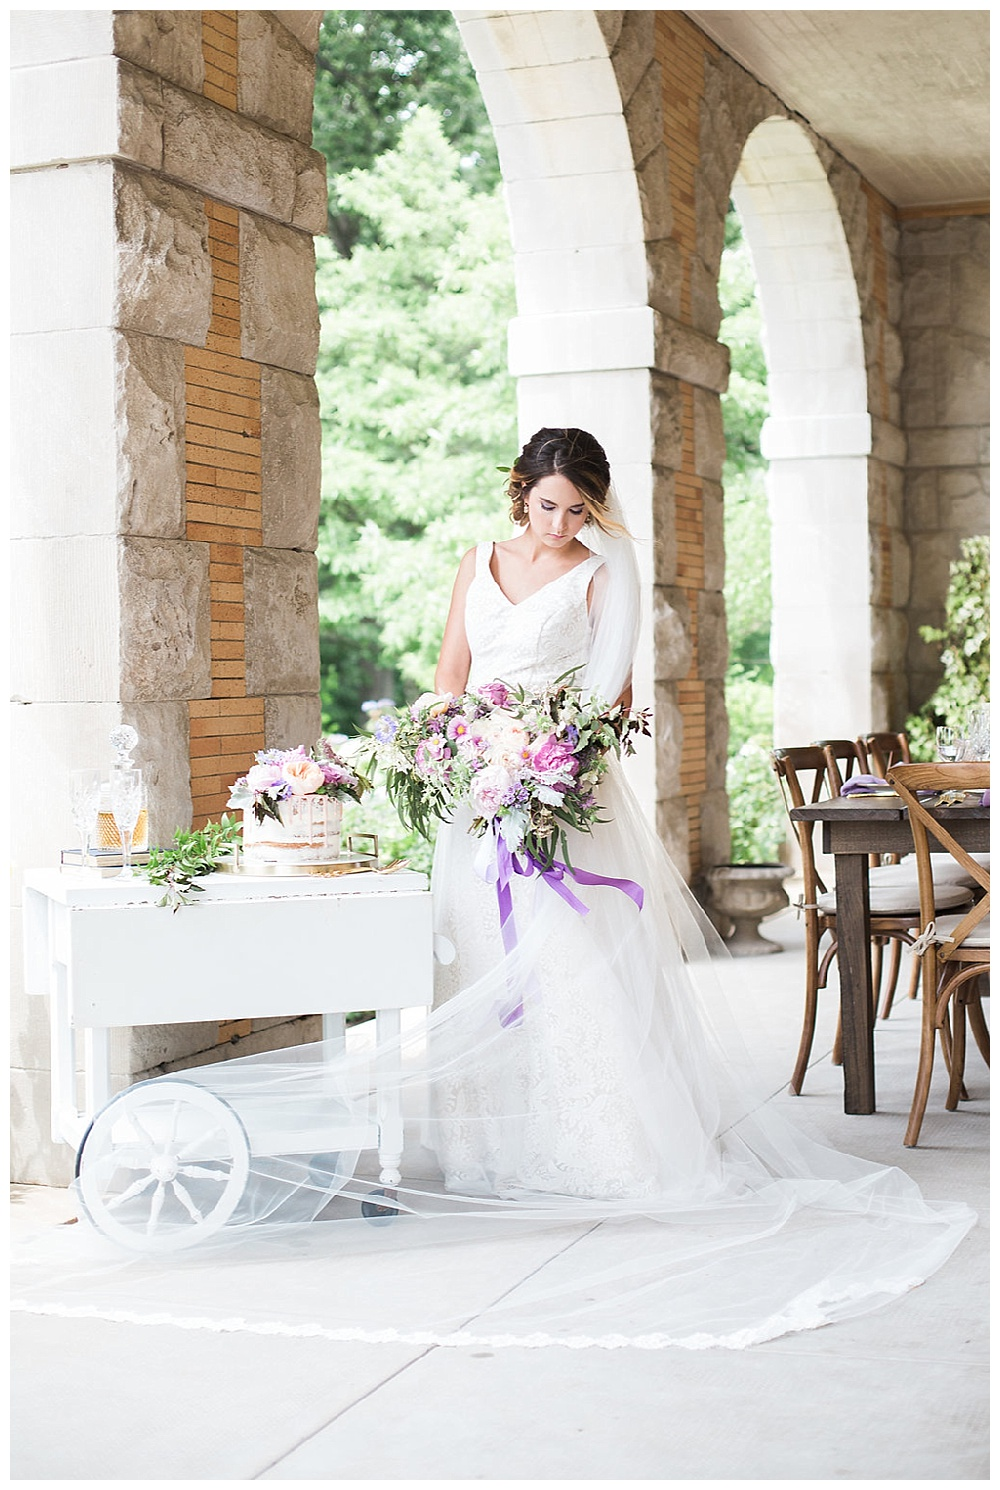 Carinwood Estate Wedding Inspiration | Huntington Valley, PA | Philadelphia Weddings | www.redoakweddings.com